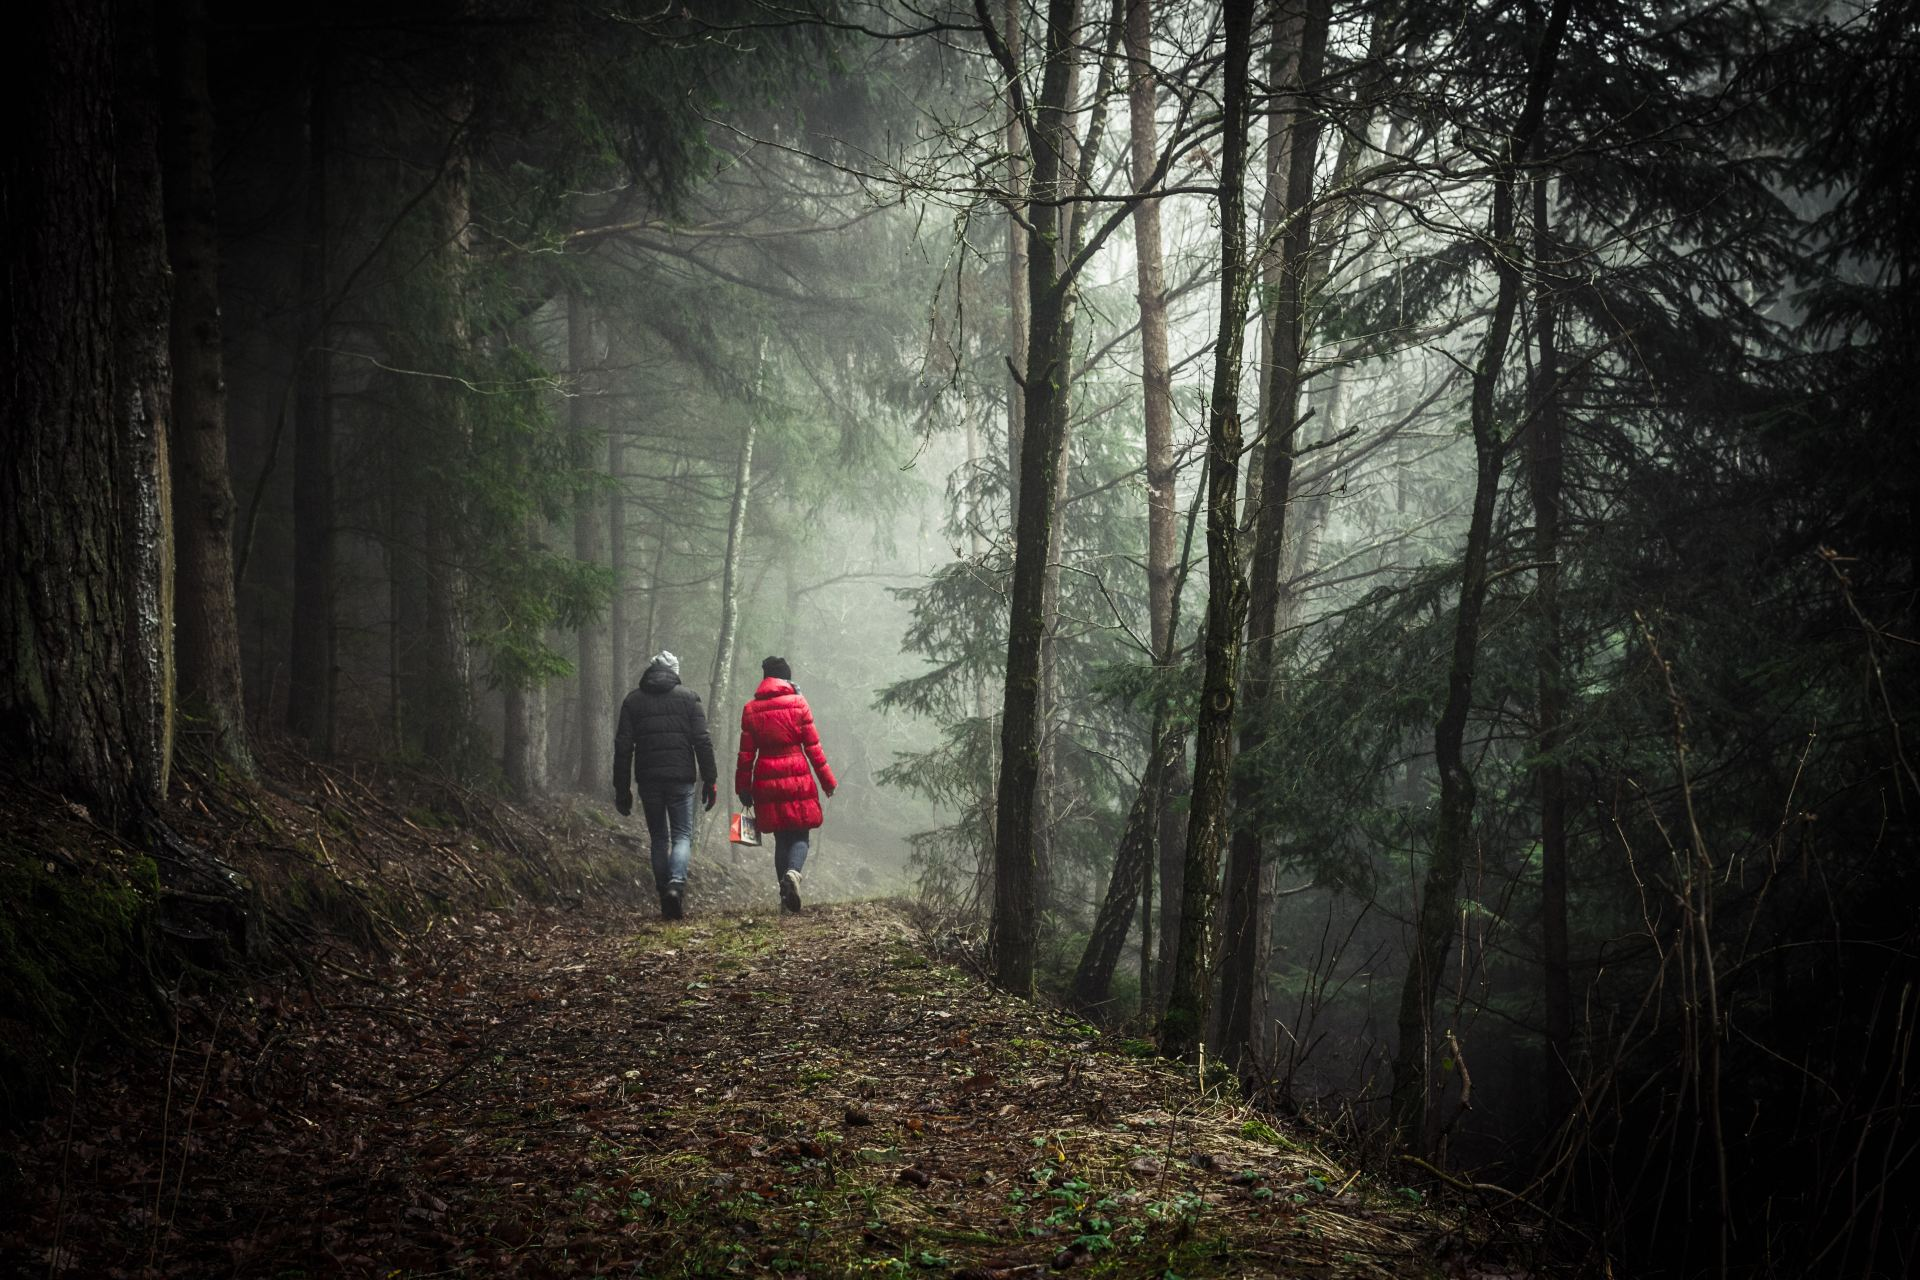 30 Hikers On The Single Scariest Thing They've Seen Deep In The Woods